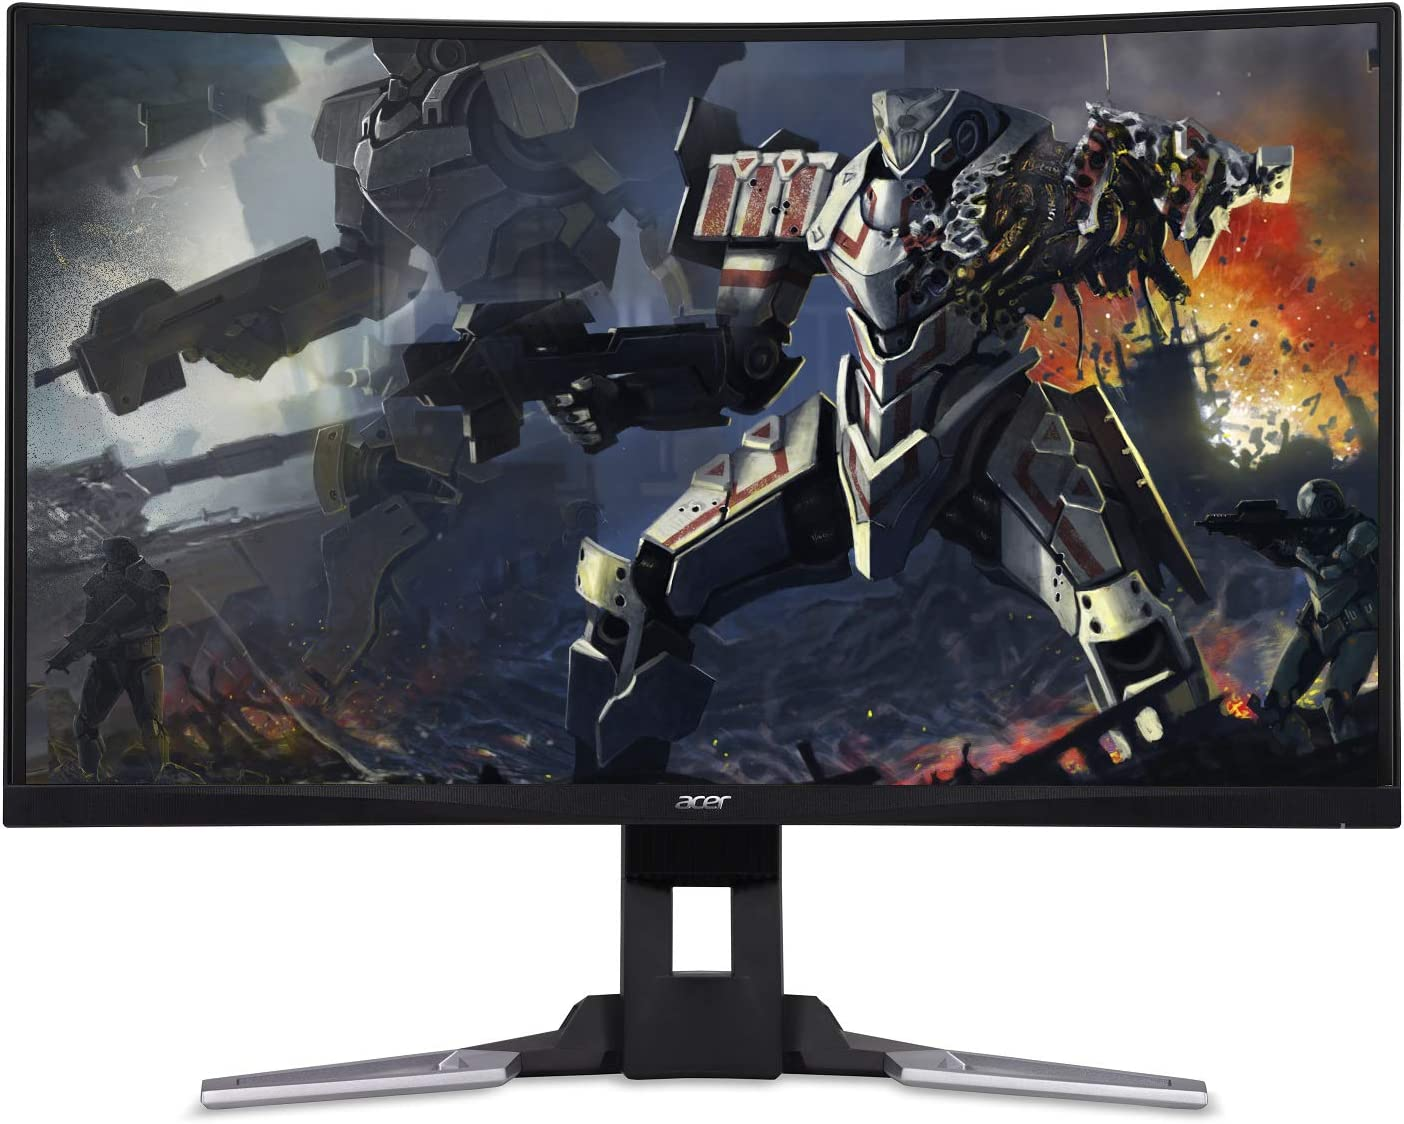 "Acer XZ321Q bmijpphzx 31.5"" Curved Full HD (1920 x 1080) AMD Radeon FreeSync and NVIDIA G-SYNC Compatible Gaming Monitor (Display Port, Mini Display Port & 2 x HDMI Ports)"